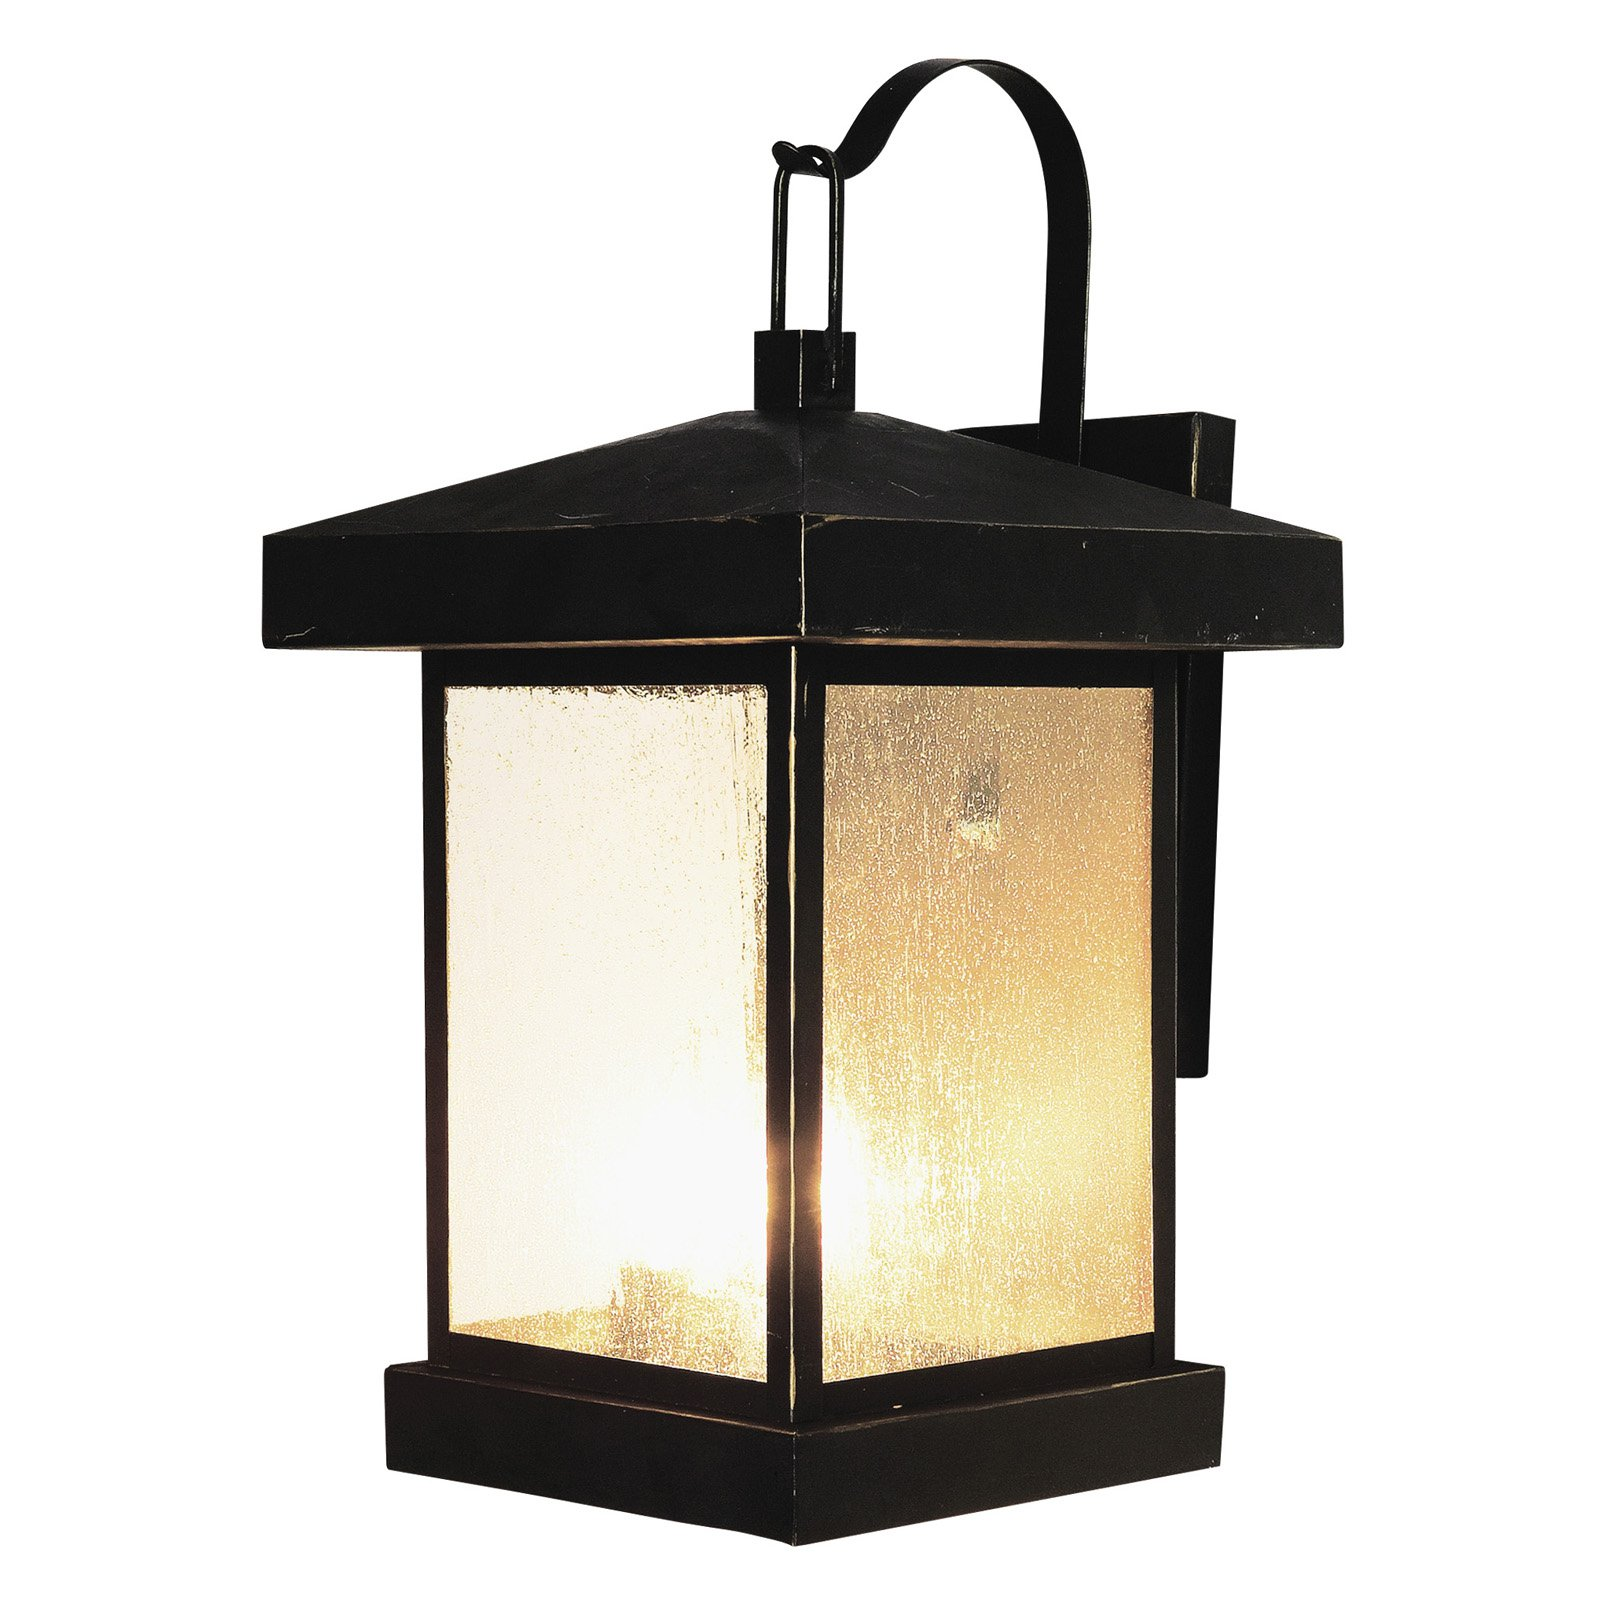 Trans Globe 45642 WB Coach Lantern - Weather Bronze - 10W in.